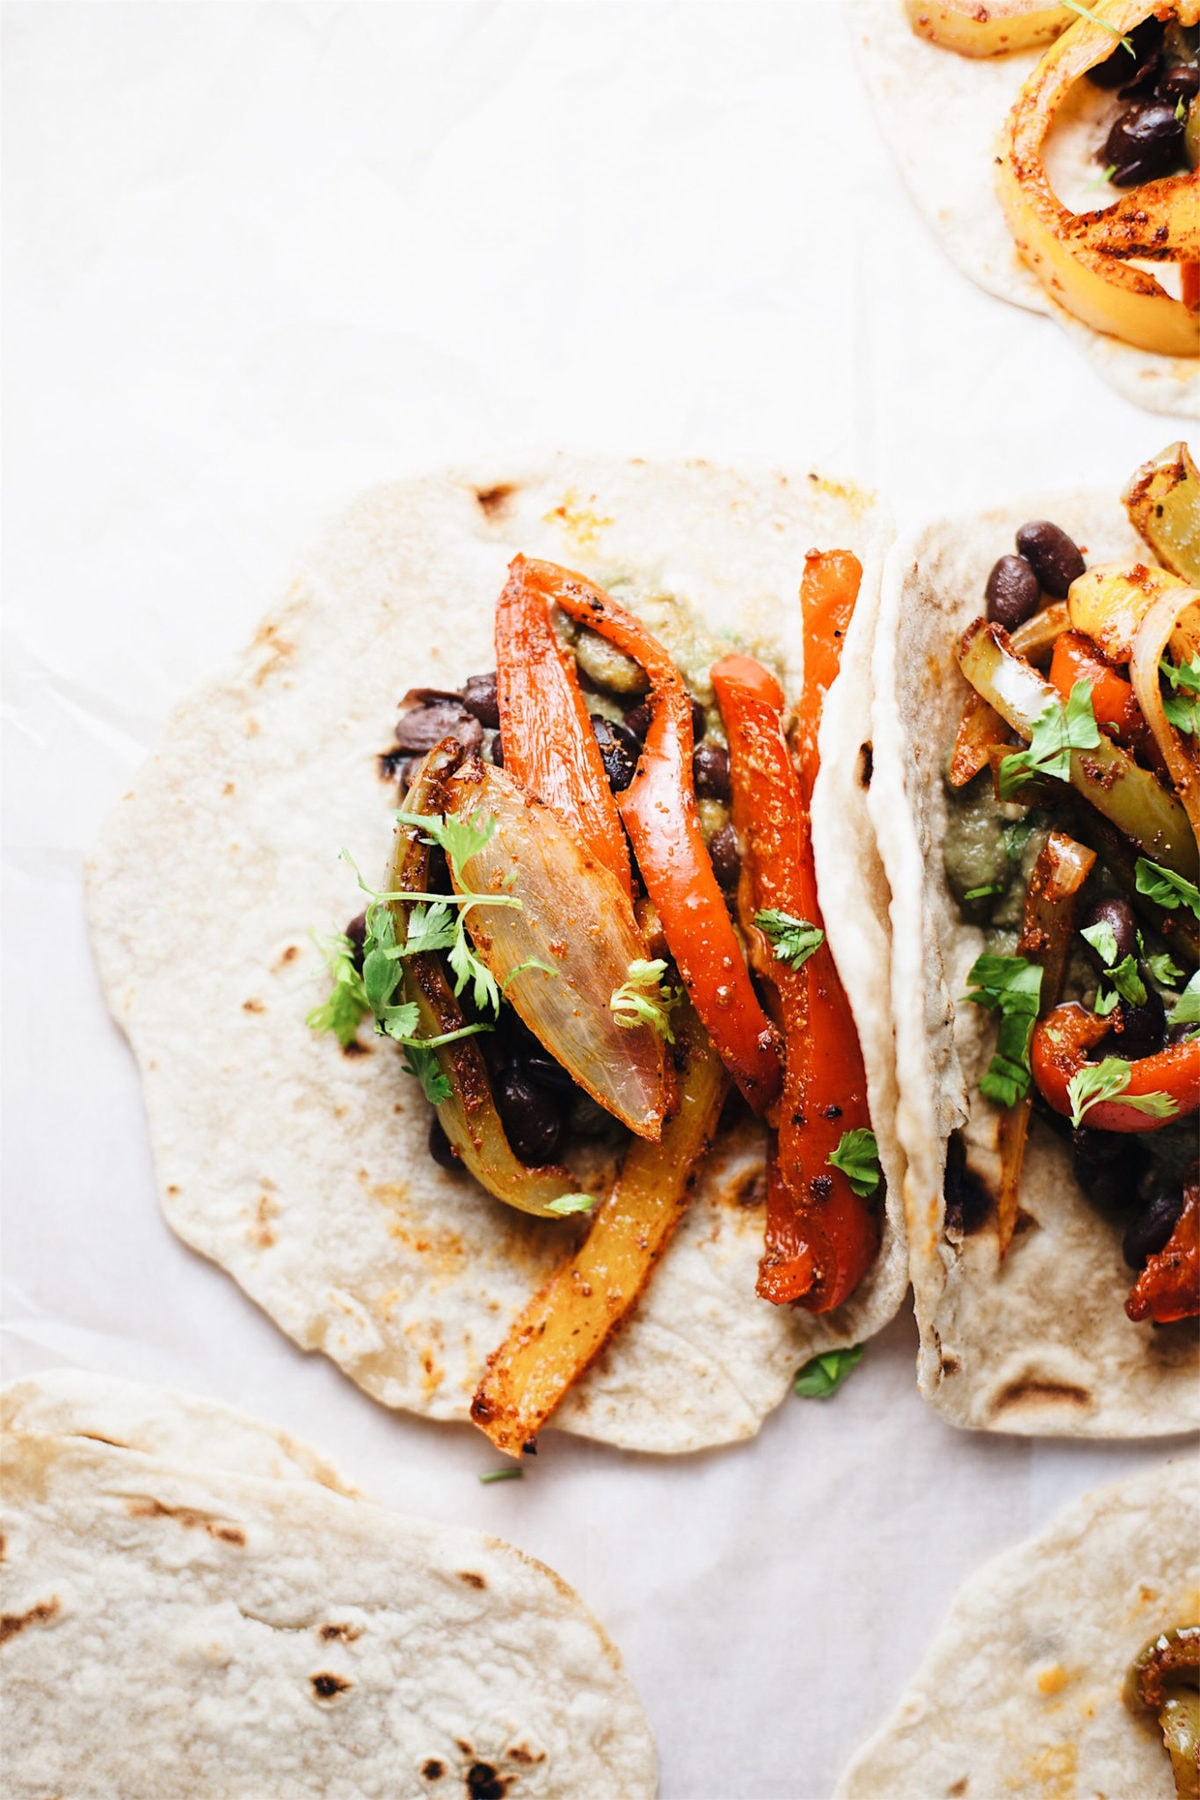 vegetarian fajitas with peppers, onions in a tortilla